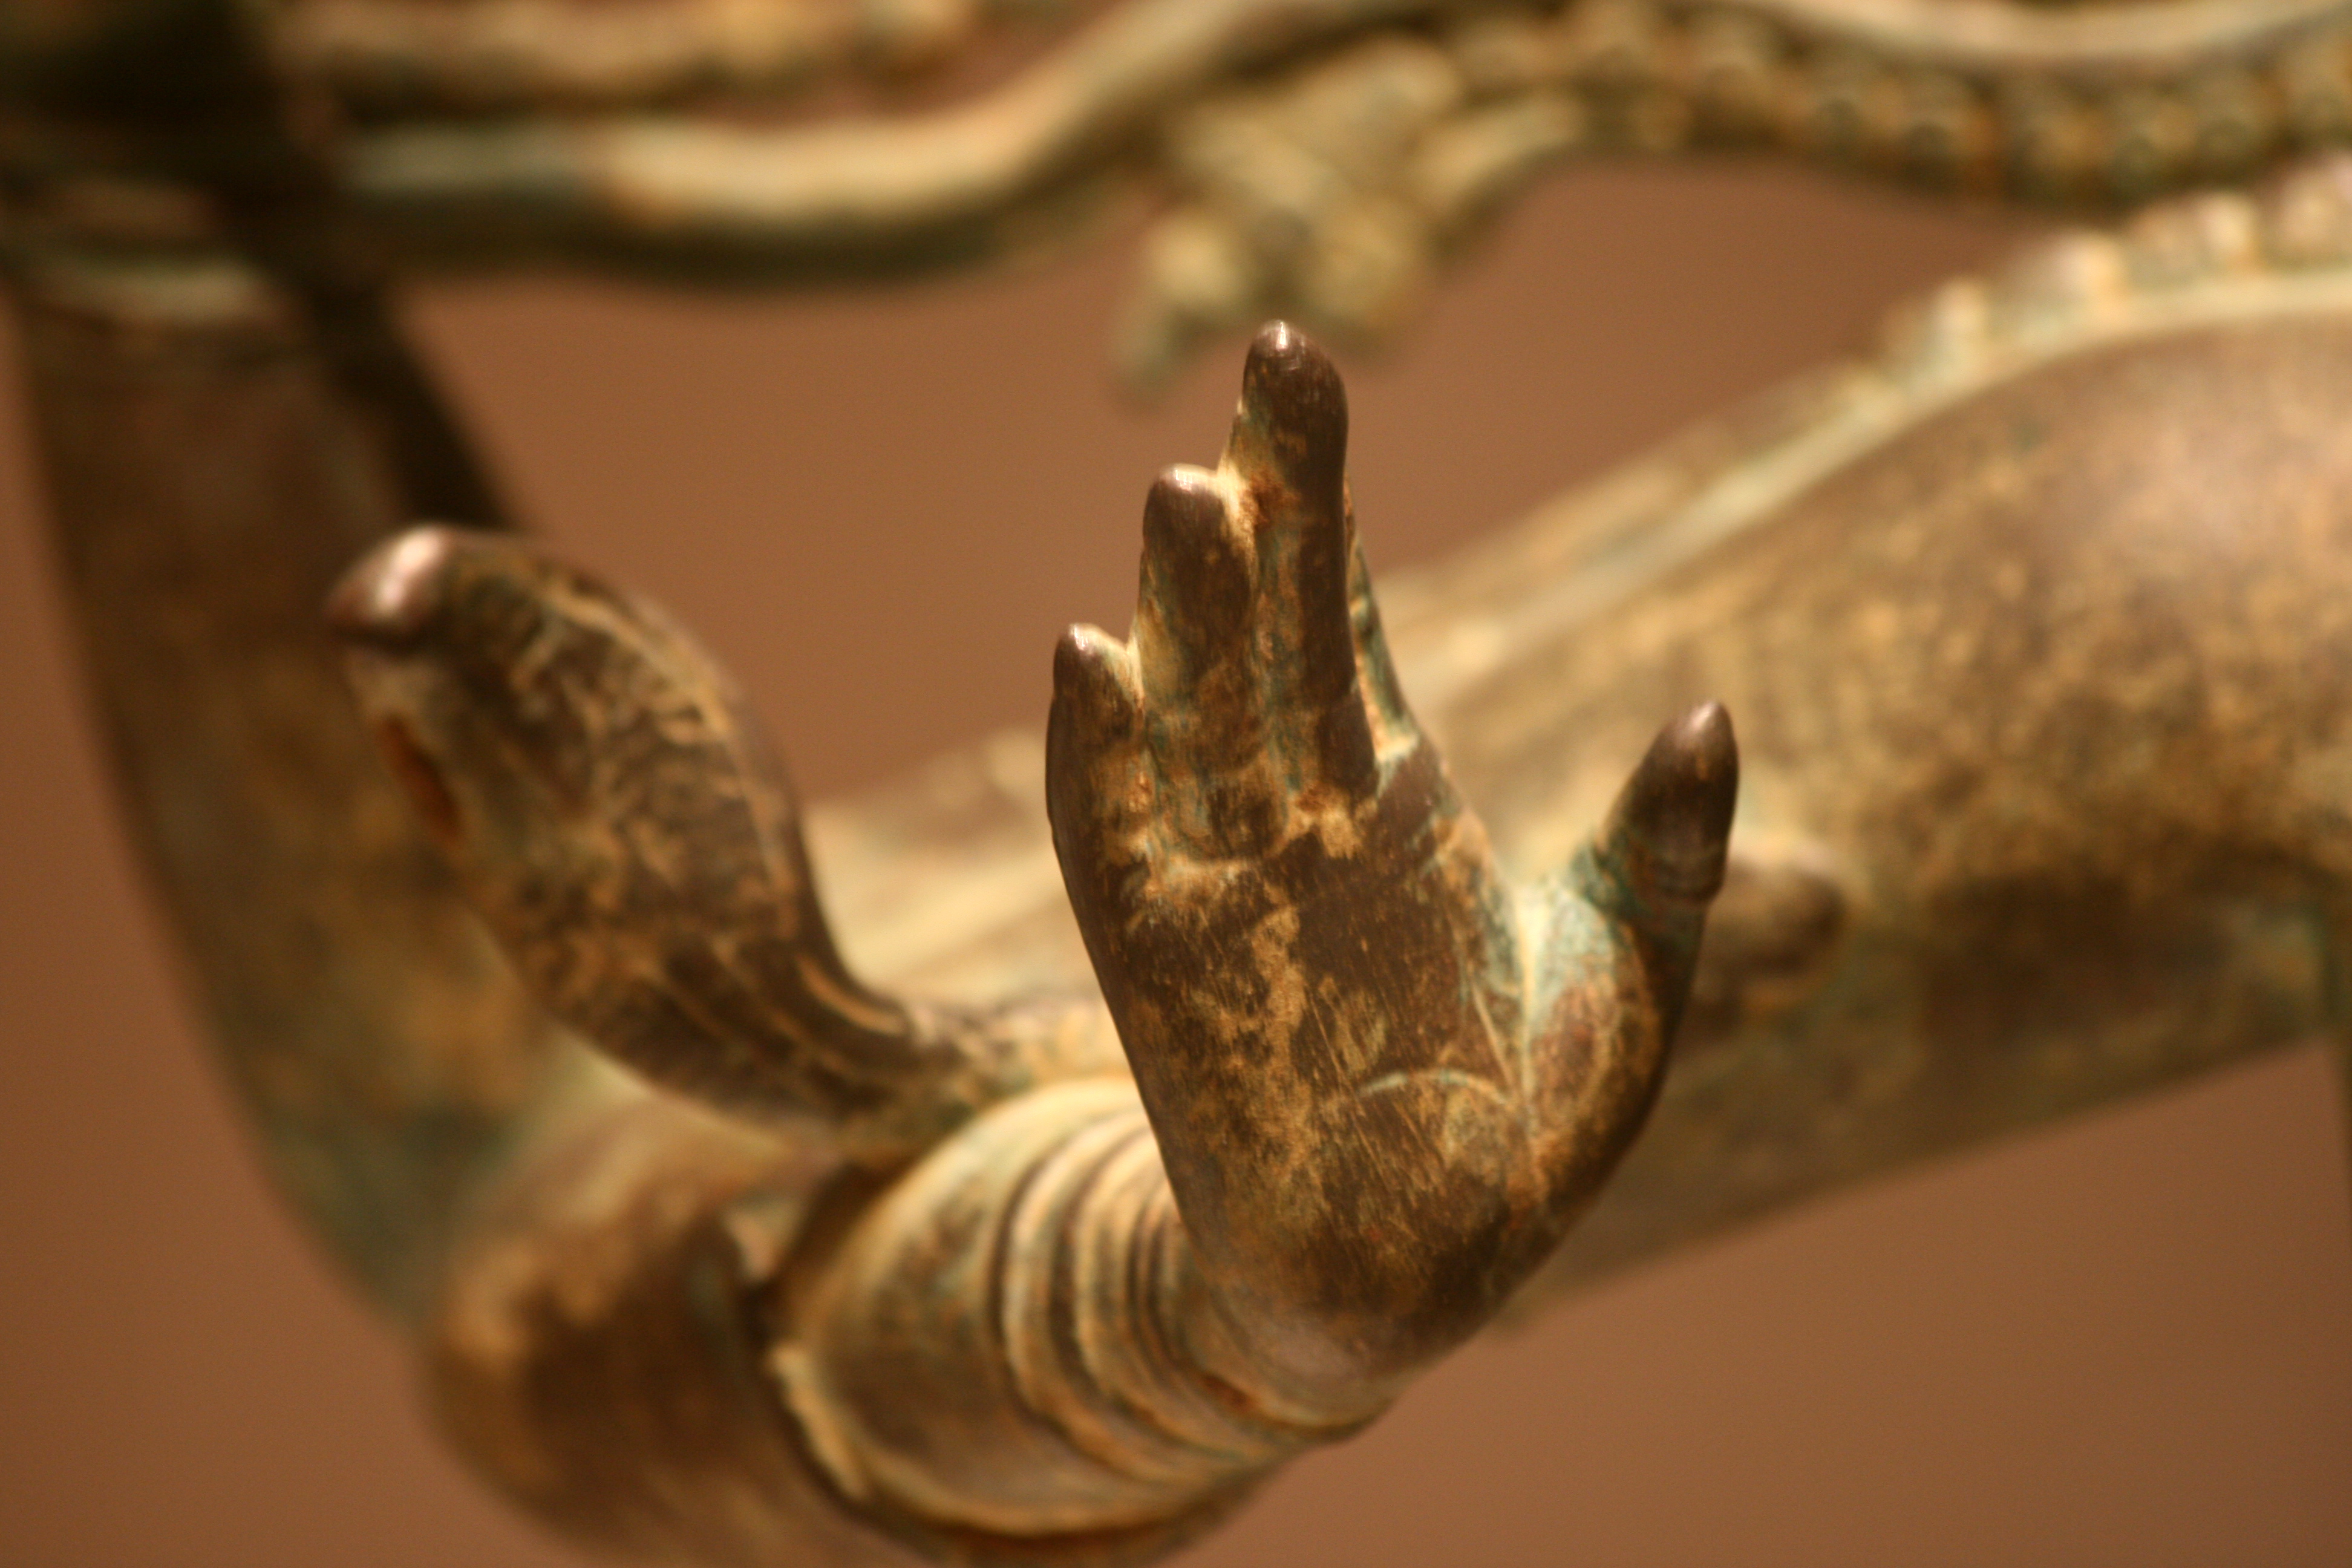 An image of a sculpted hand, in color, dominant sepia tones.